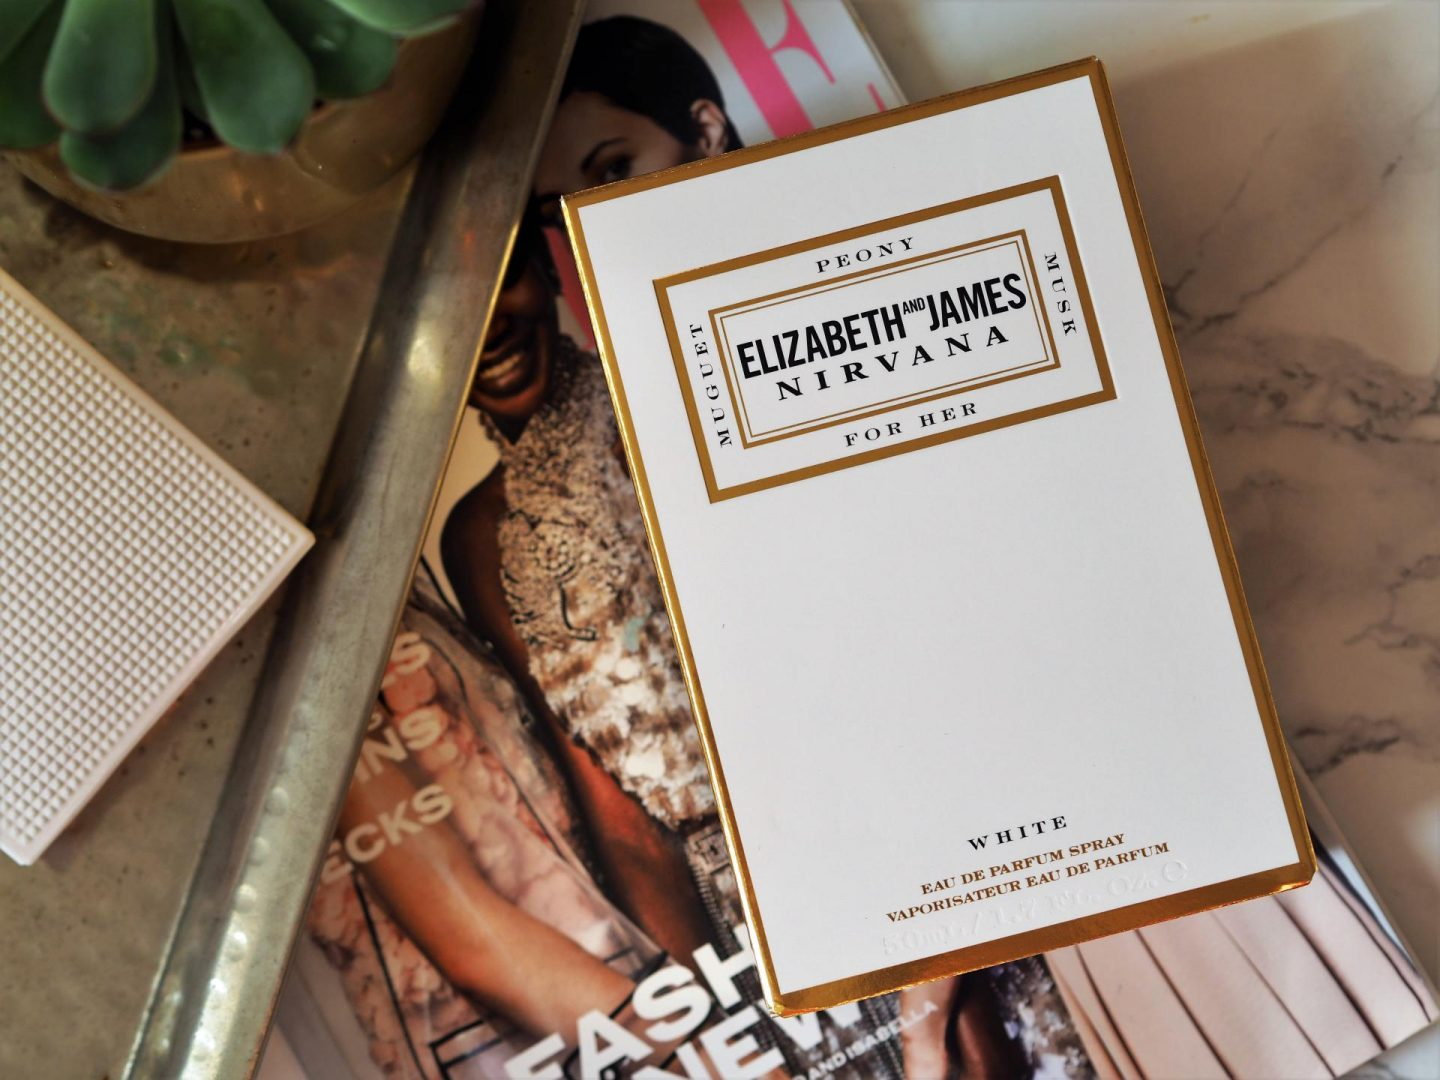 Luxe Beauty Buys - Product: Elizabeth and James Nirvana White Eau de Parfum